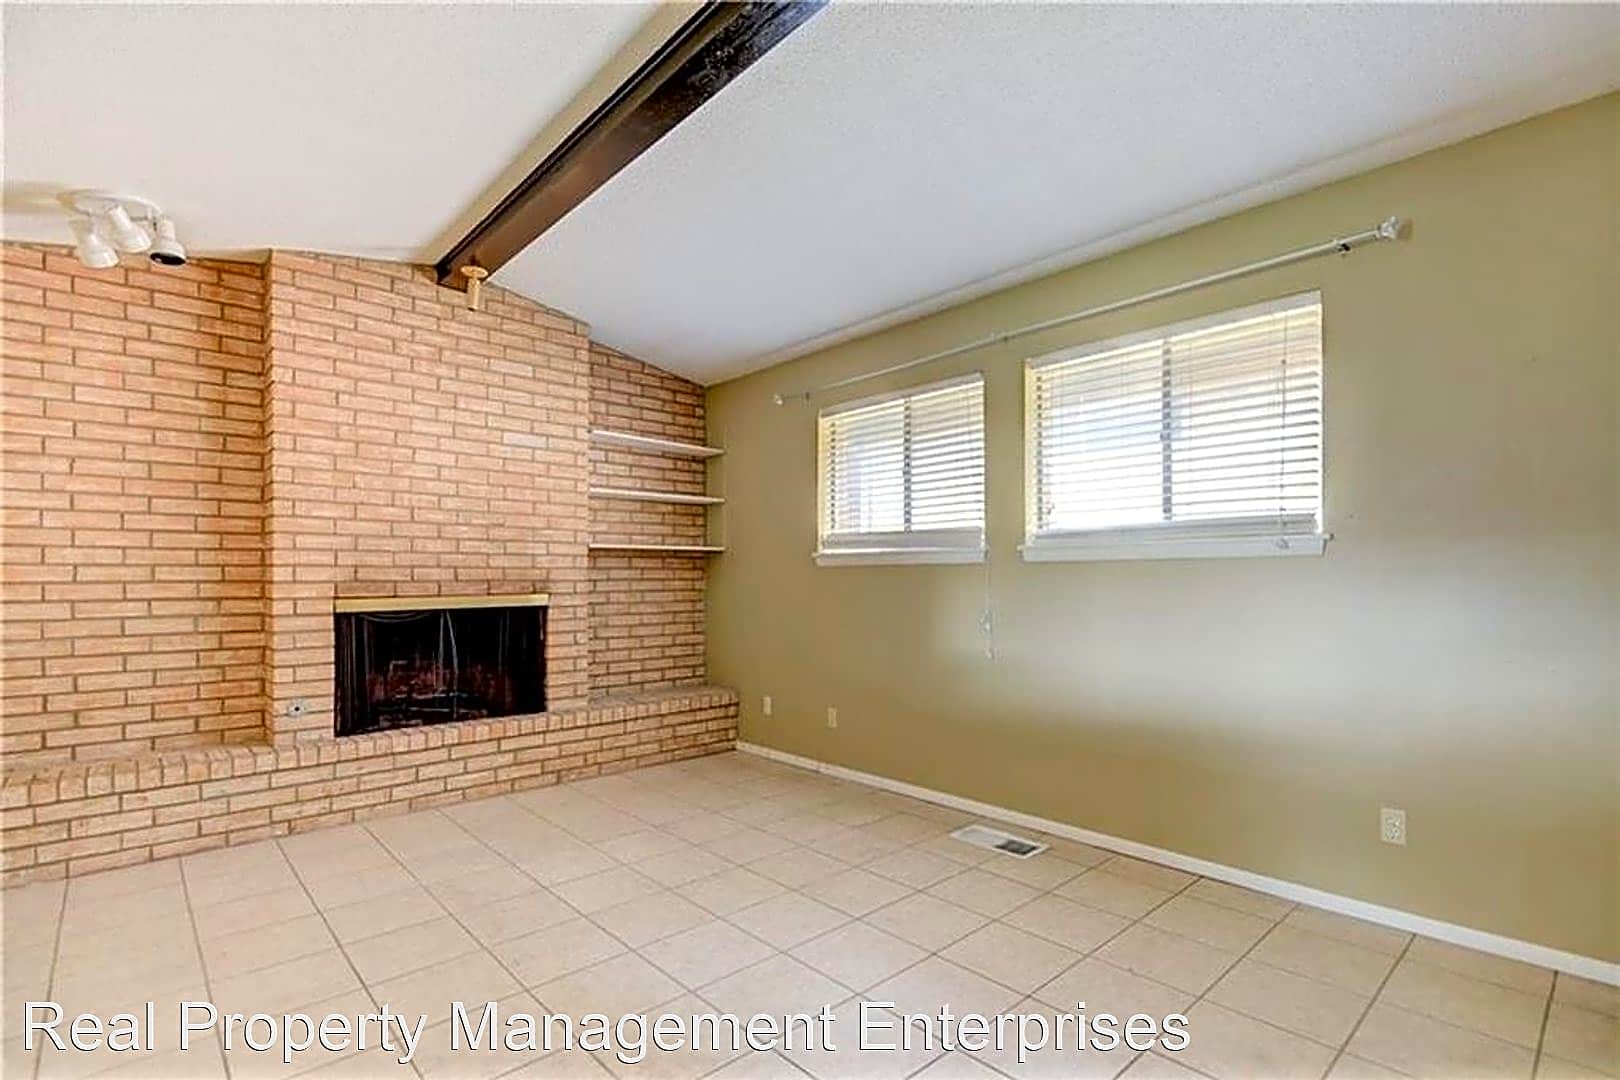 House for Rent in Oklahoma City